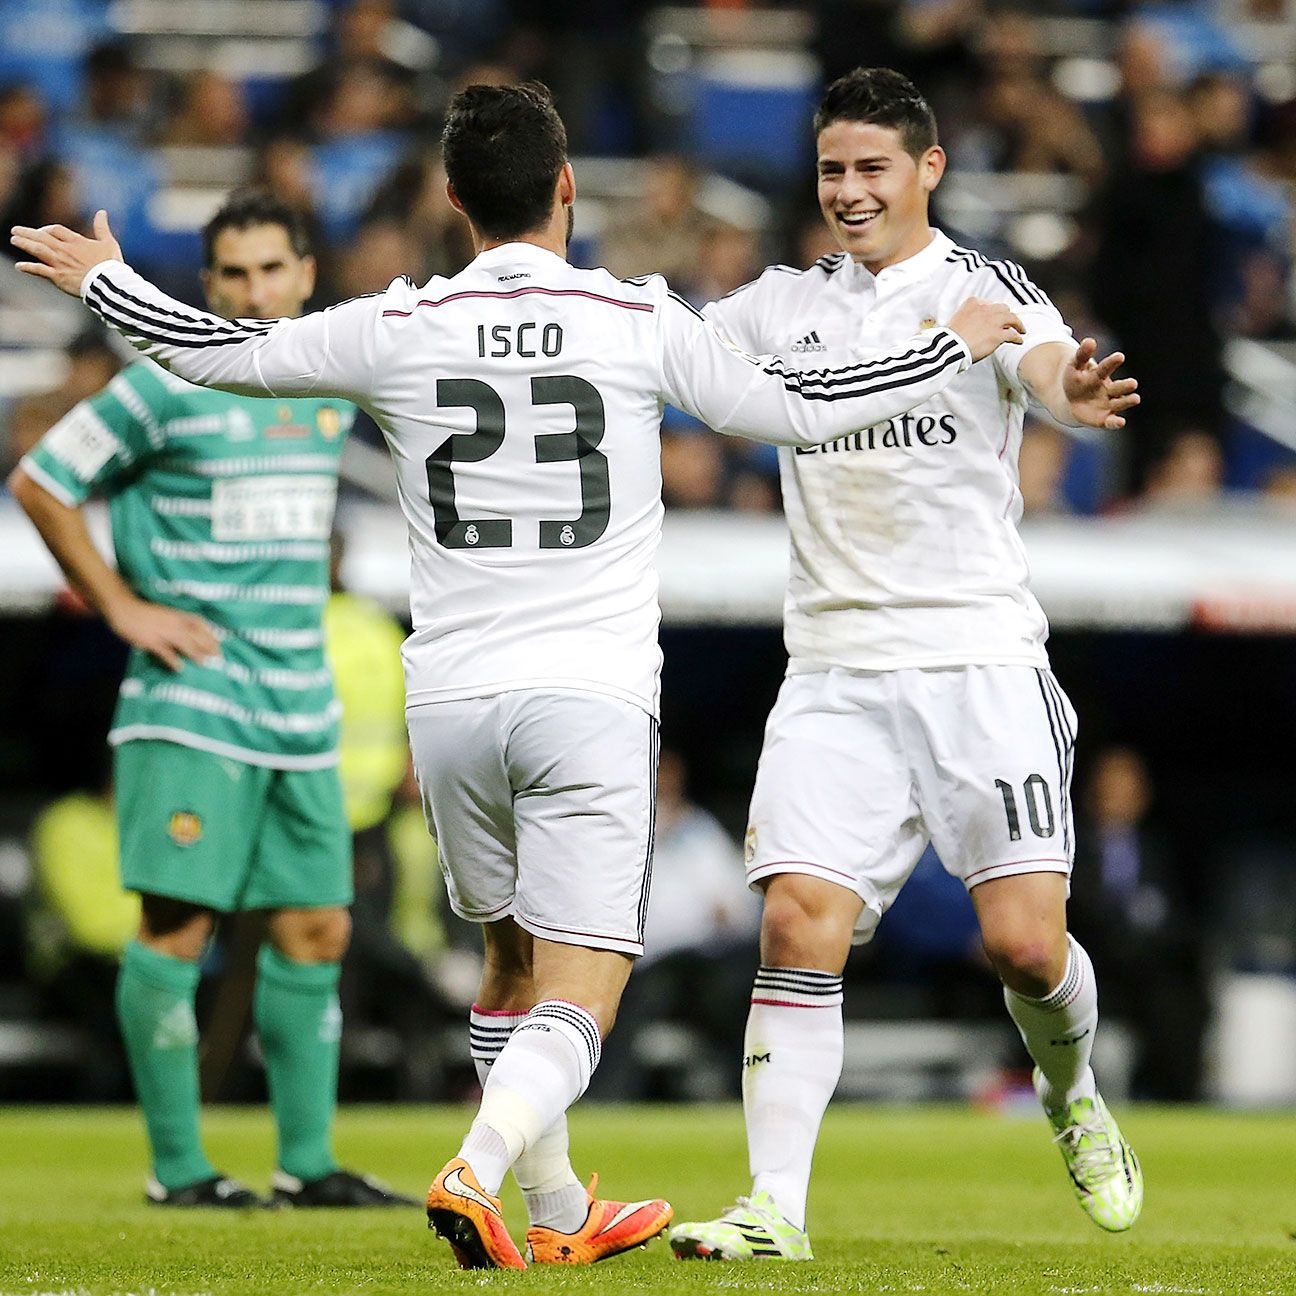 Both Isco and James will be looking to impress when Real face Rayo on Wednesday.